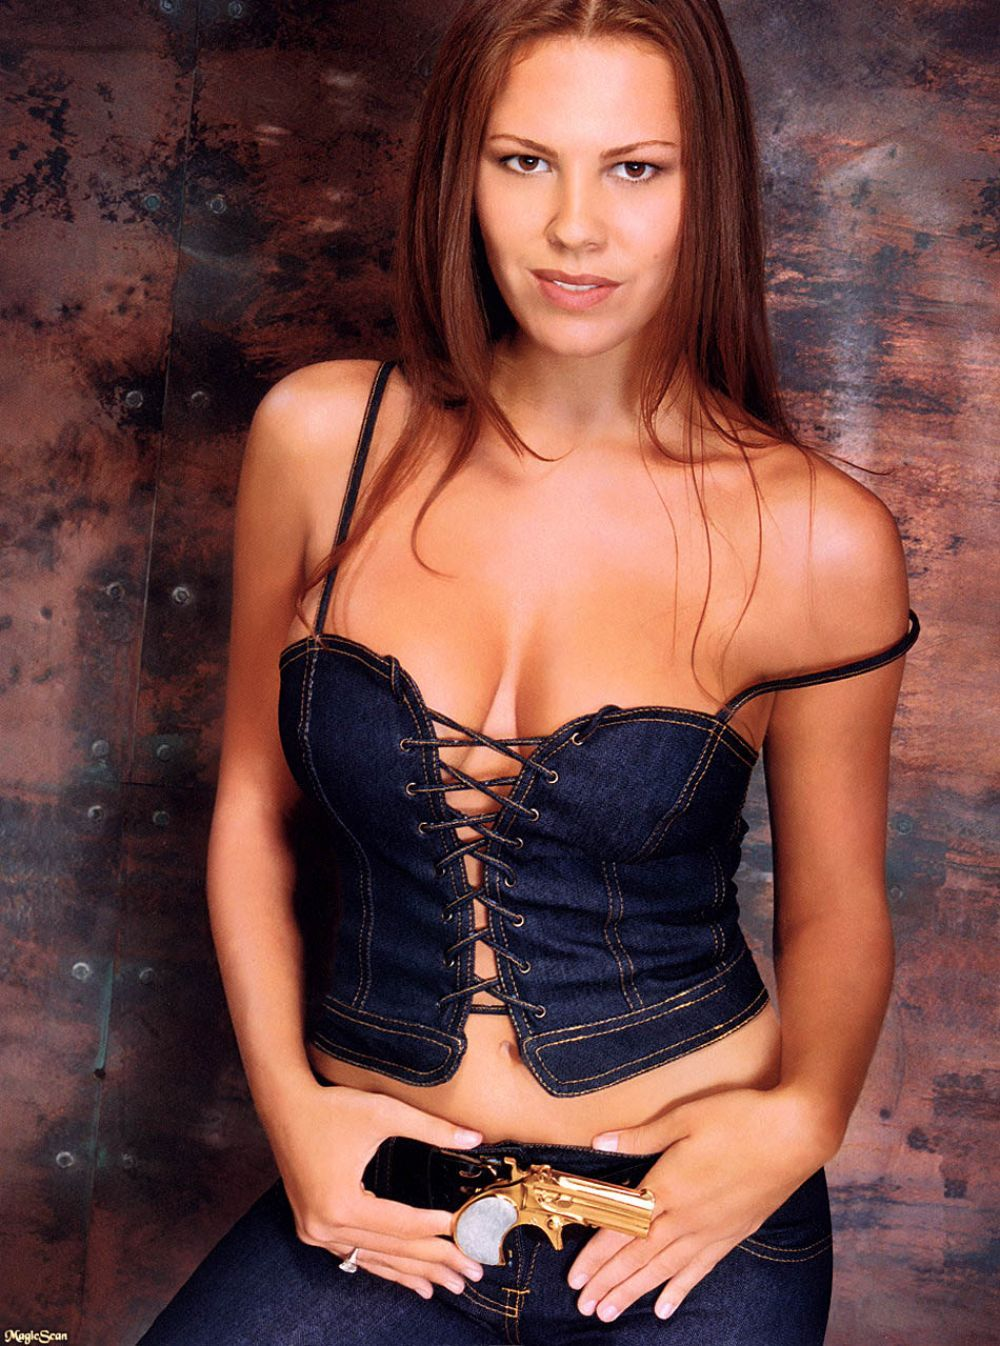 Cleavage Nikki Cox nude photos 2019